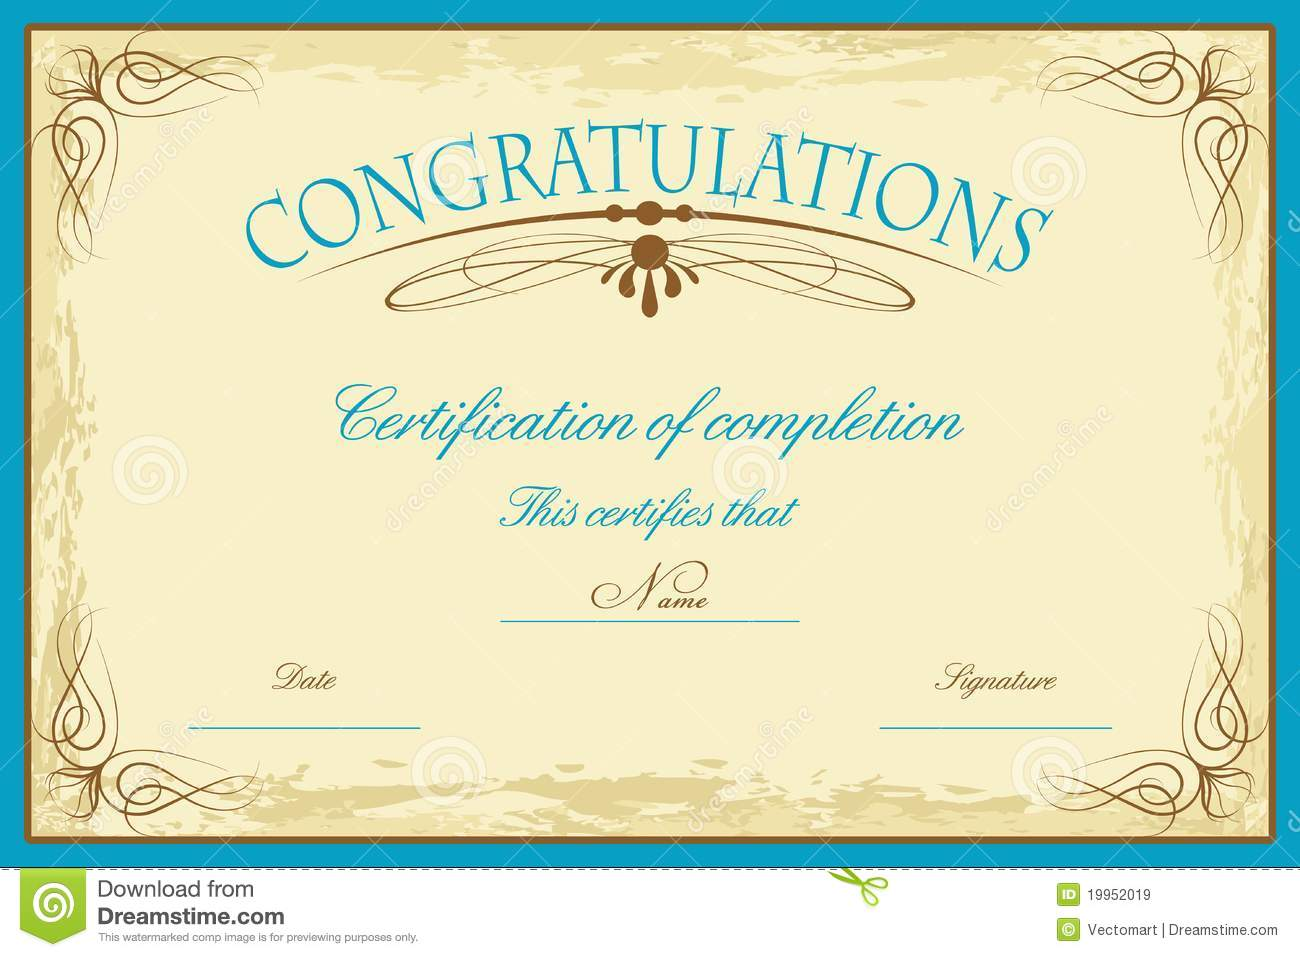 Certificate Templates, Award Certificates and Free Printable Certi